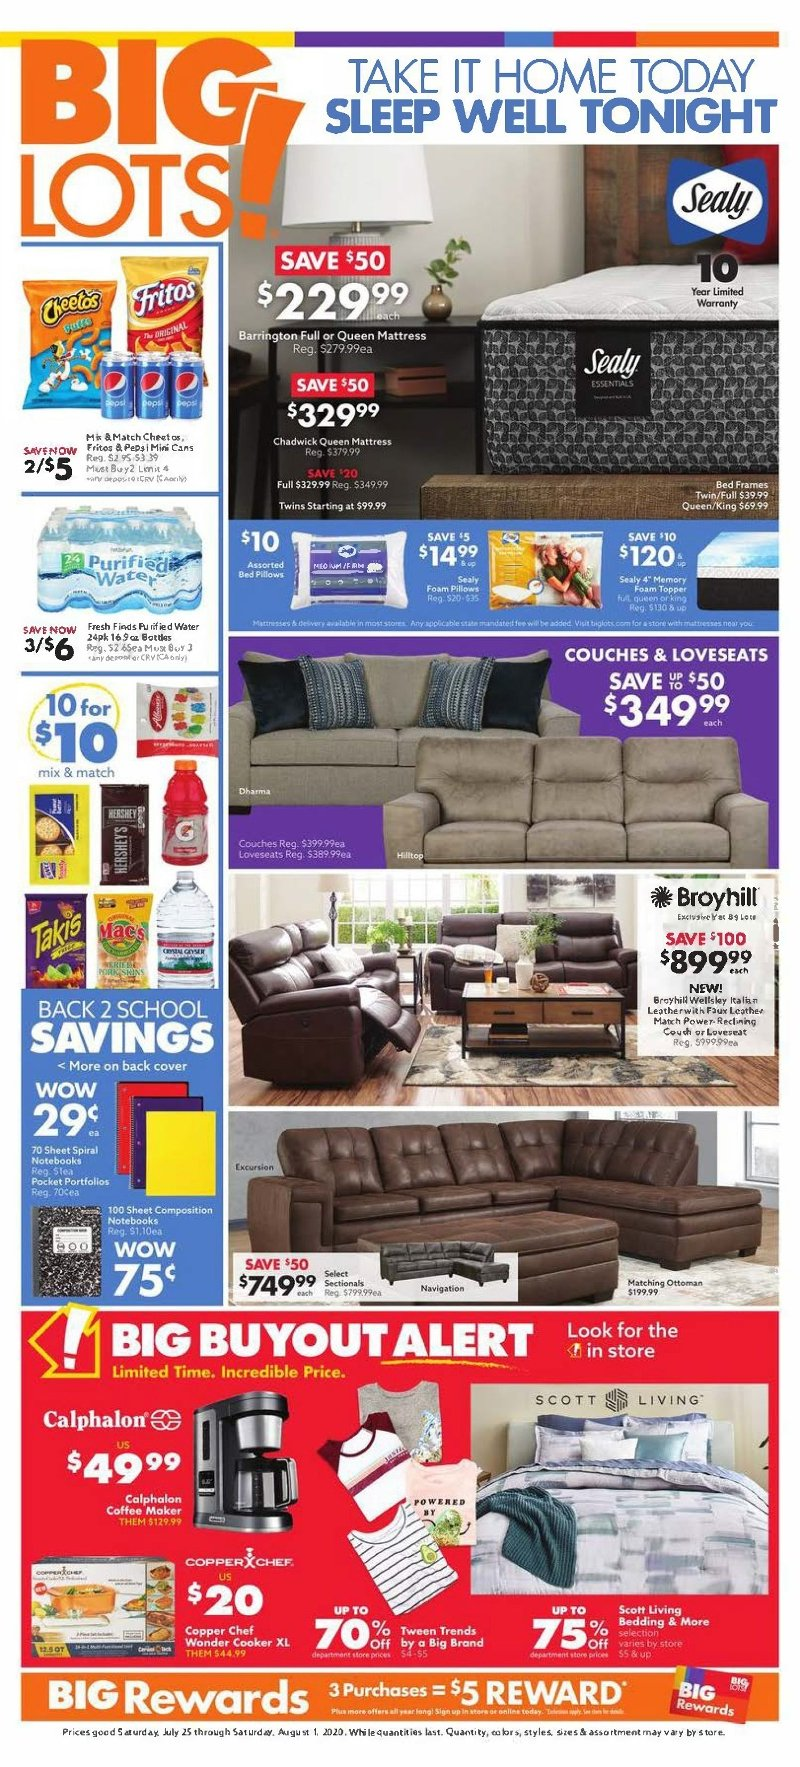 Big Lots Weekly July 25 - August 1, 2020 Page 1